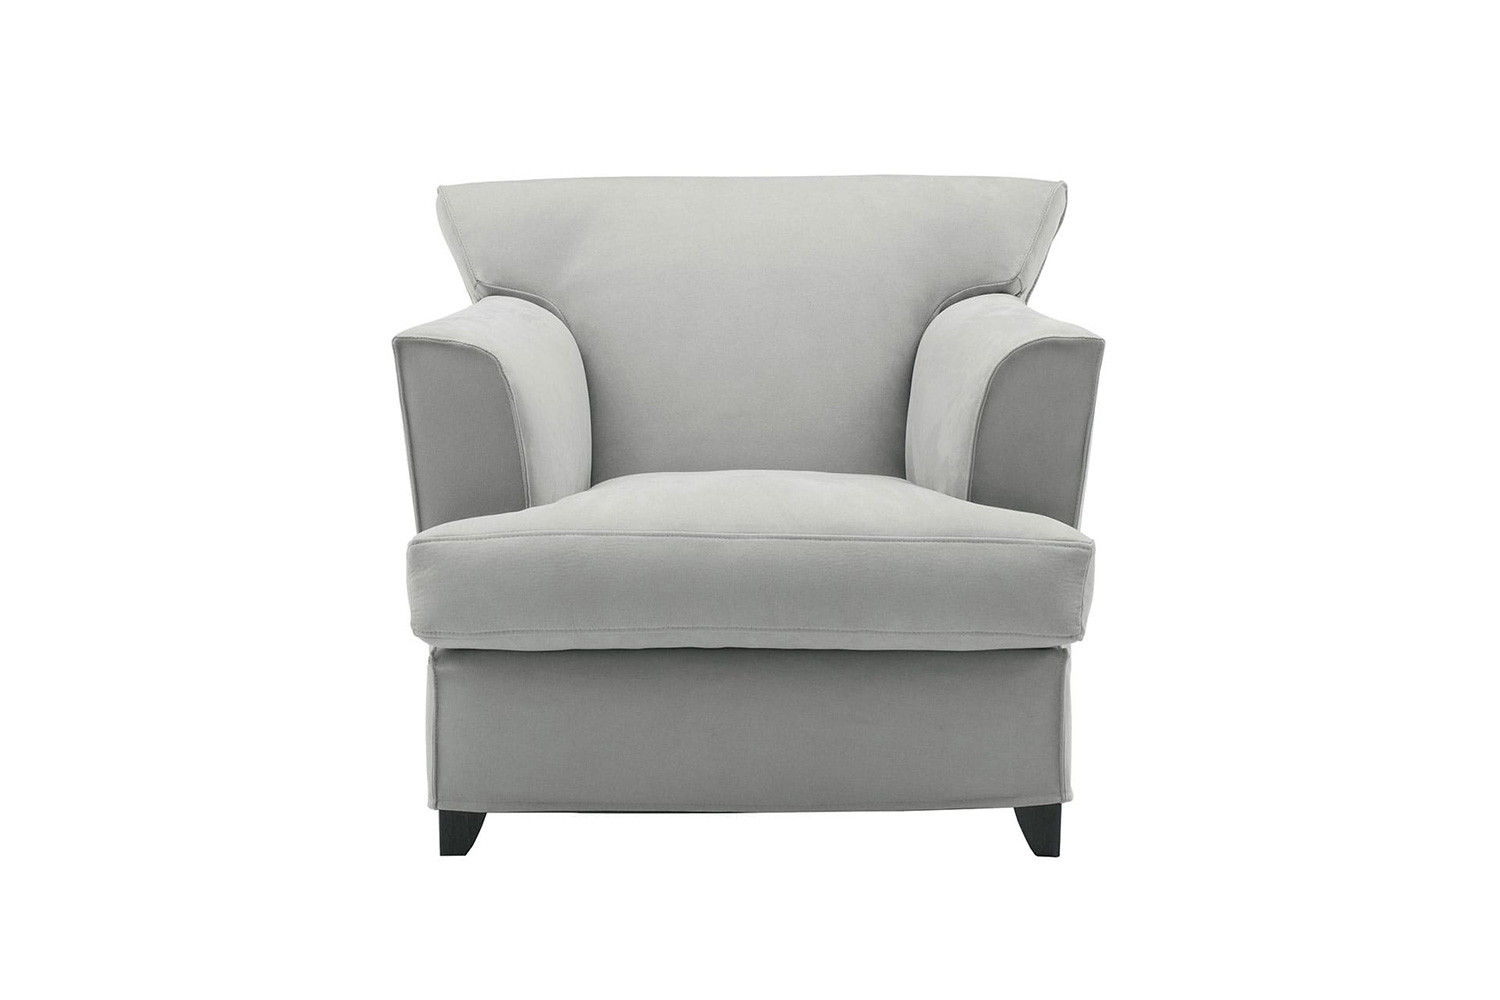 Thick padded comfortable armchair with a deep t-seat cushion, recessed high arms and wooden legs